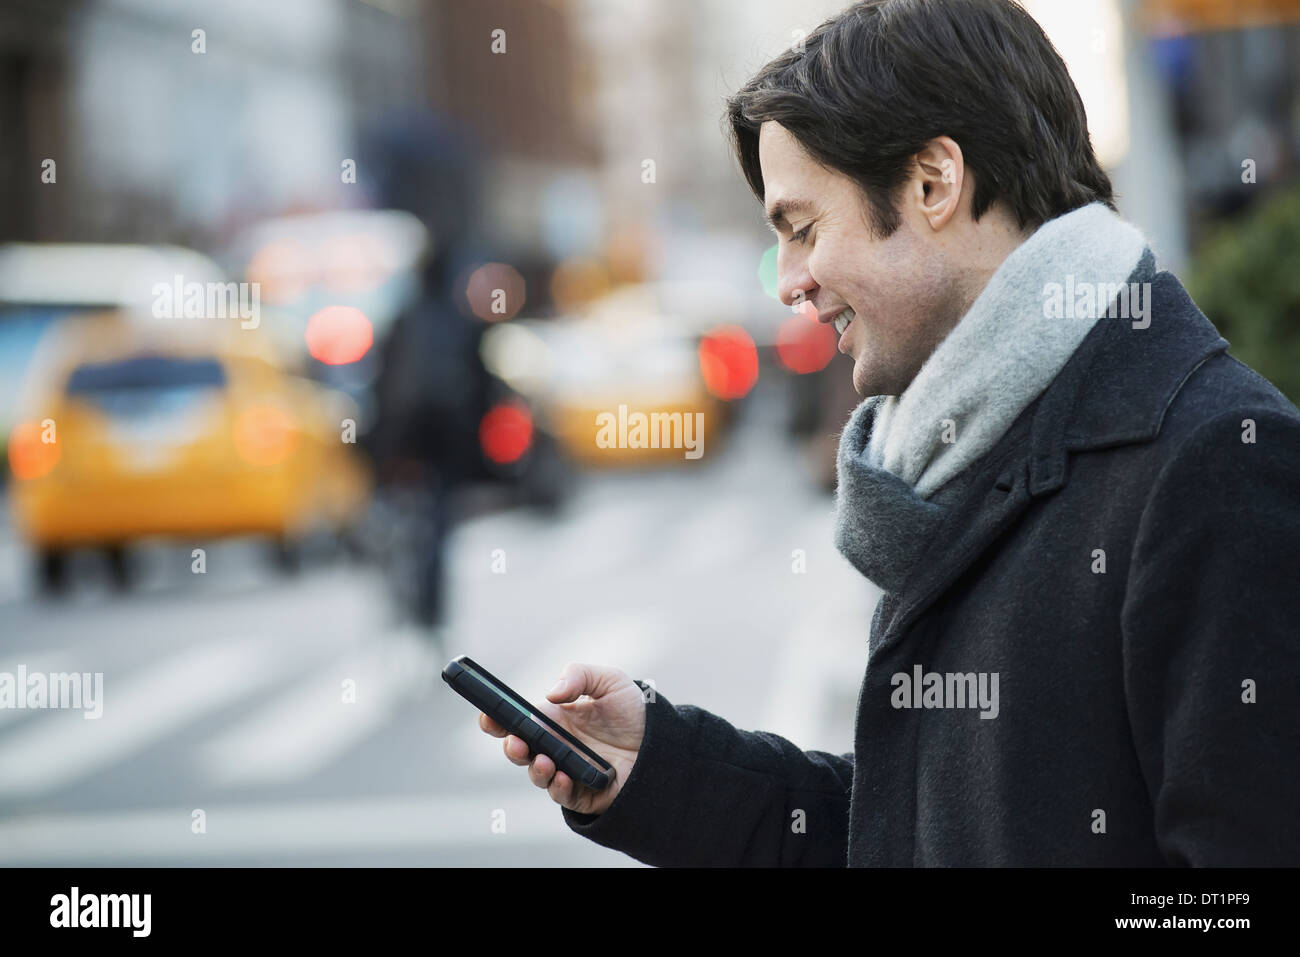 Man on busy street with smartphone - Stock Image